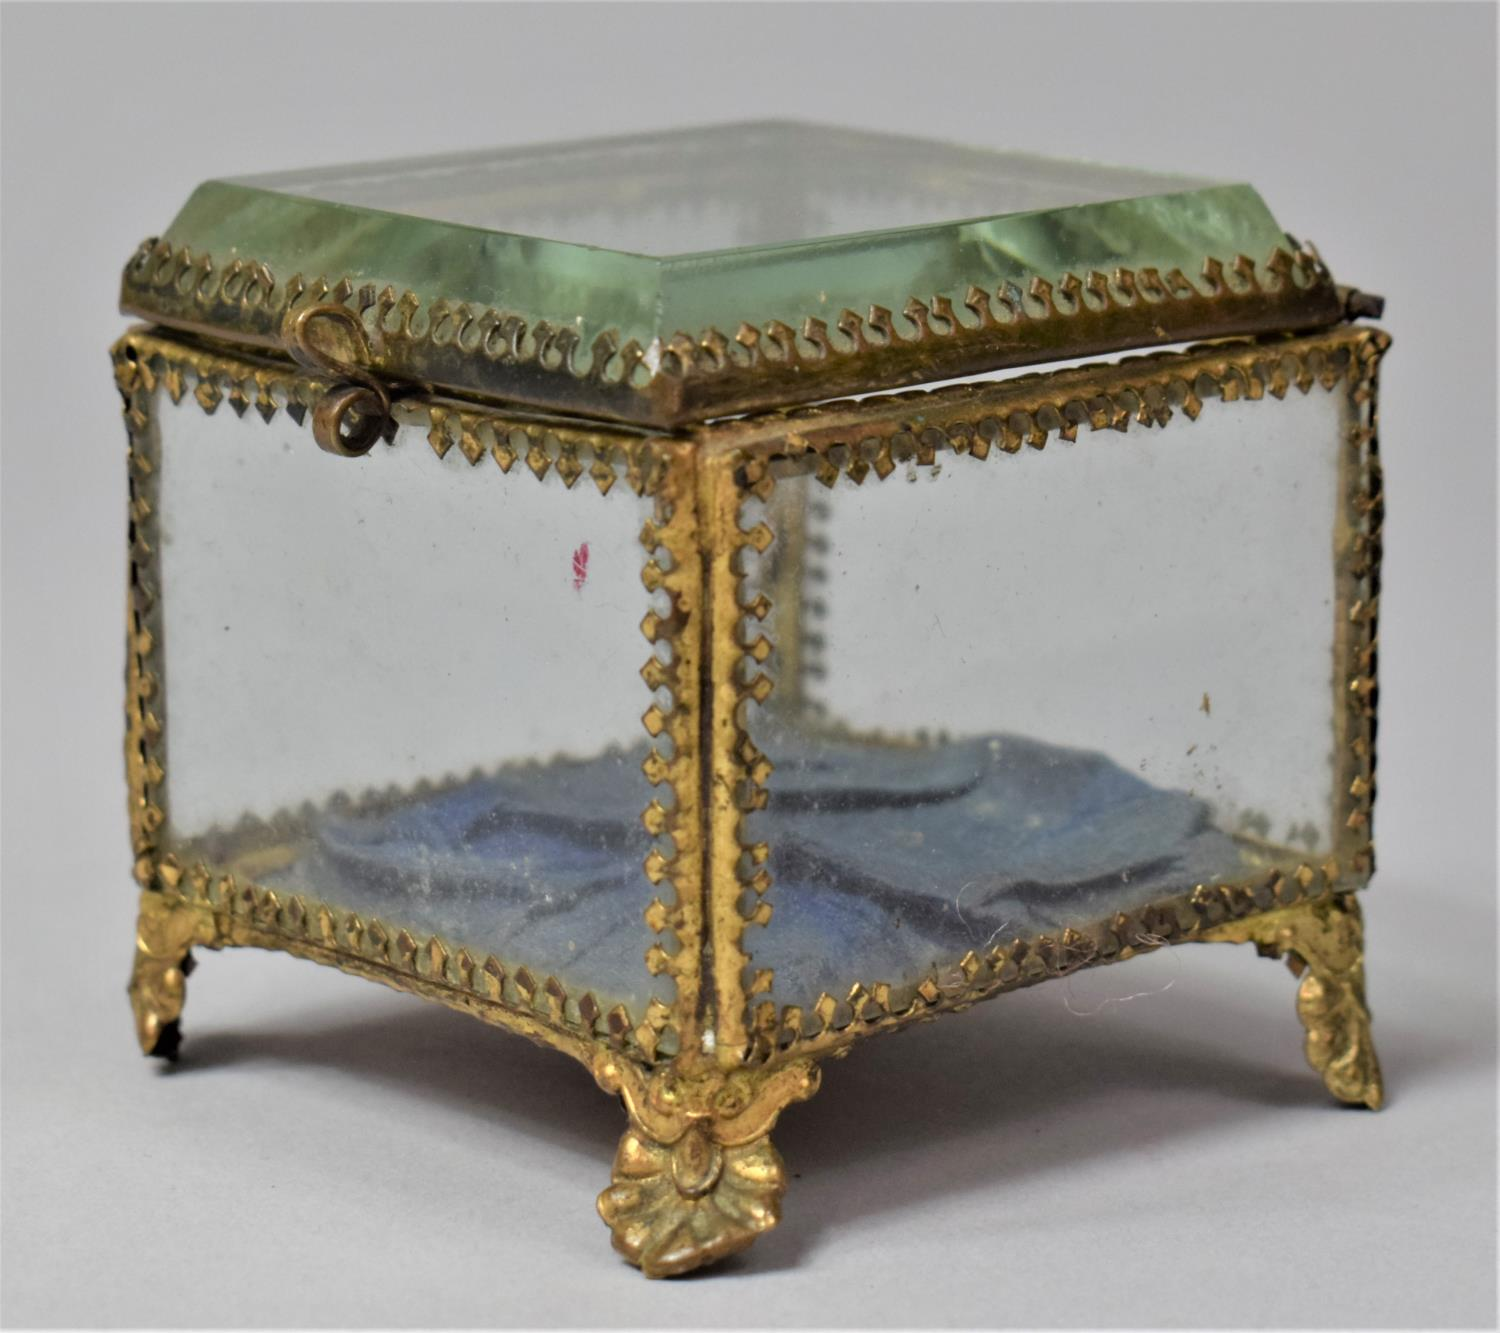 A Late 19th Century French Ormolu Framed Glass Jewellery Box on Four Scrolled Feet, 6.5cm Square